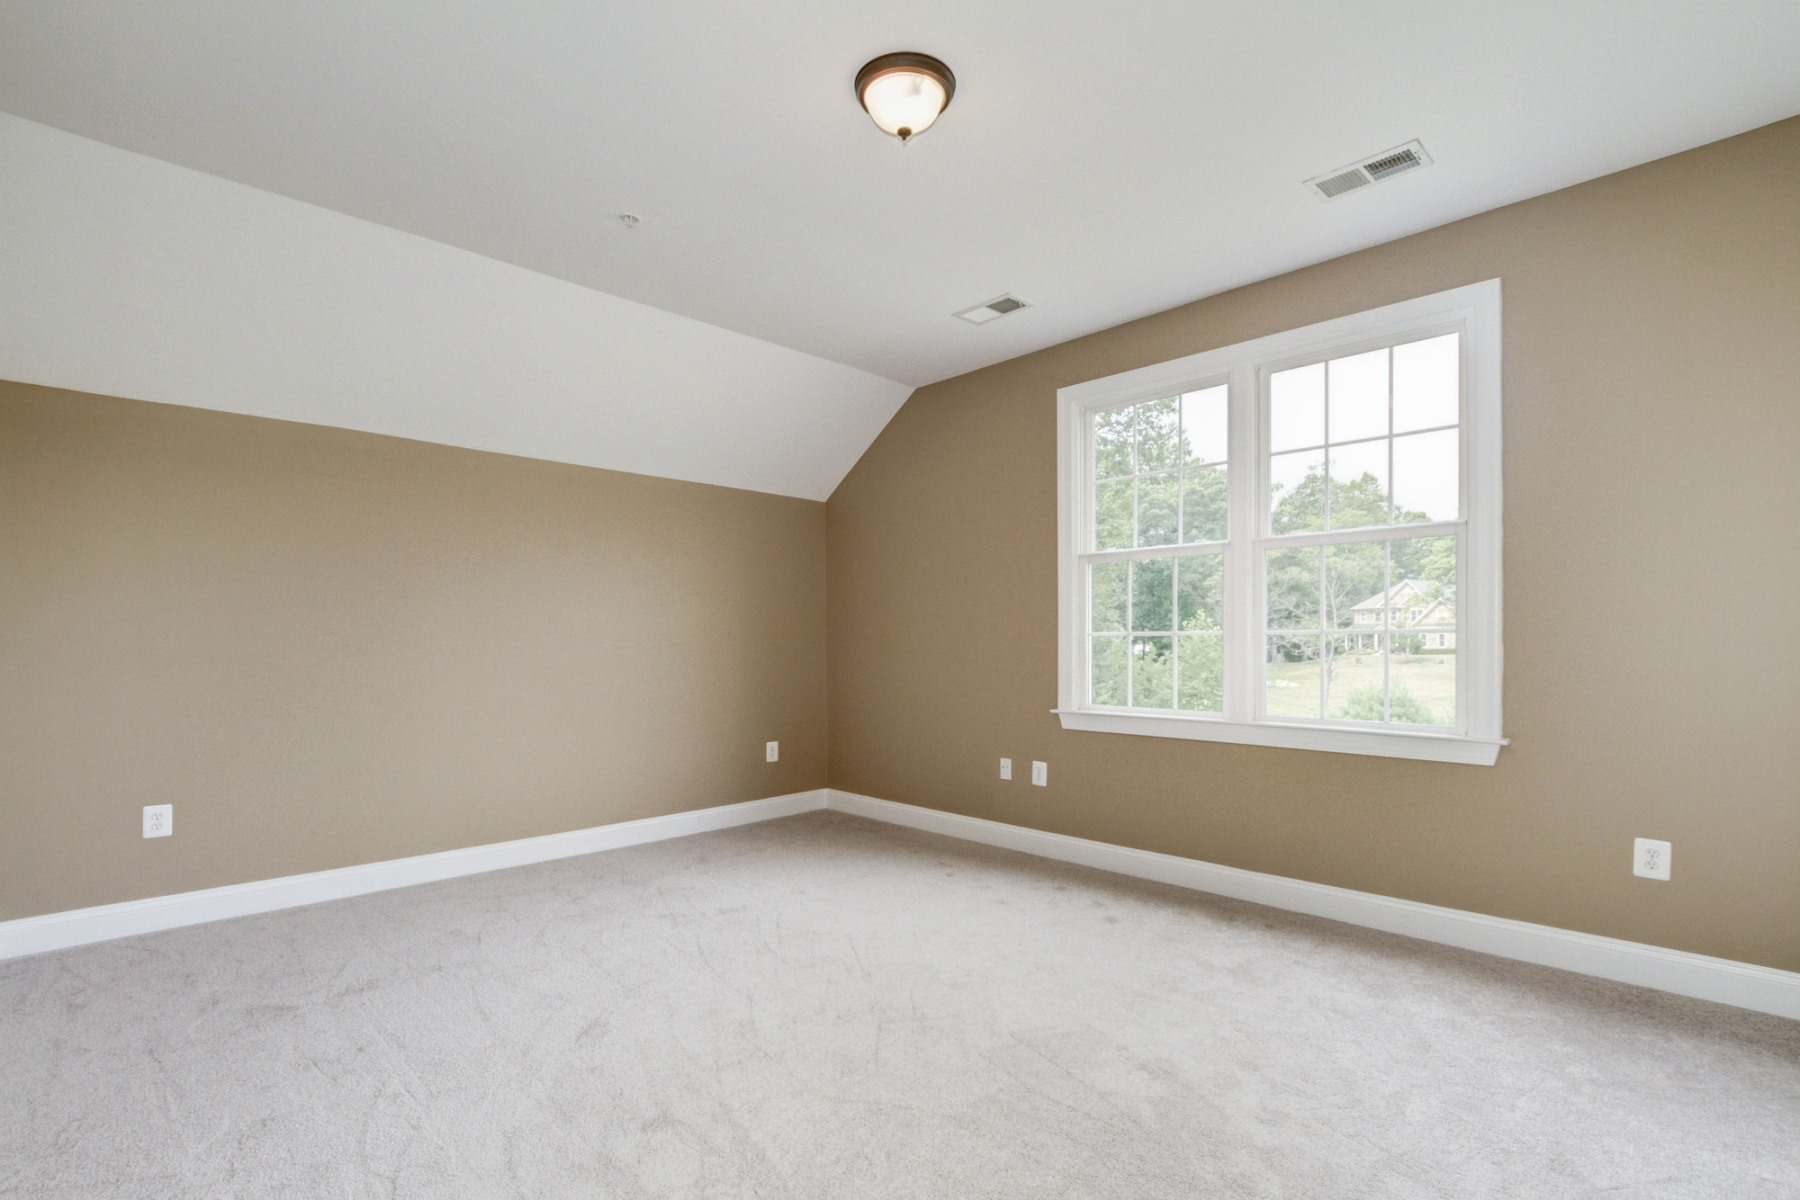 Additional photo for property listing at 9013 Magruder Knolls Court, Gaithersburg 9013 Magruder Knolls Ct Gaithersburg, Maryland 20882 Stati Uniti